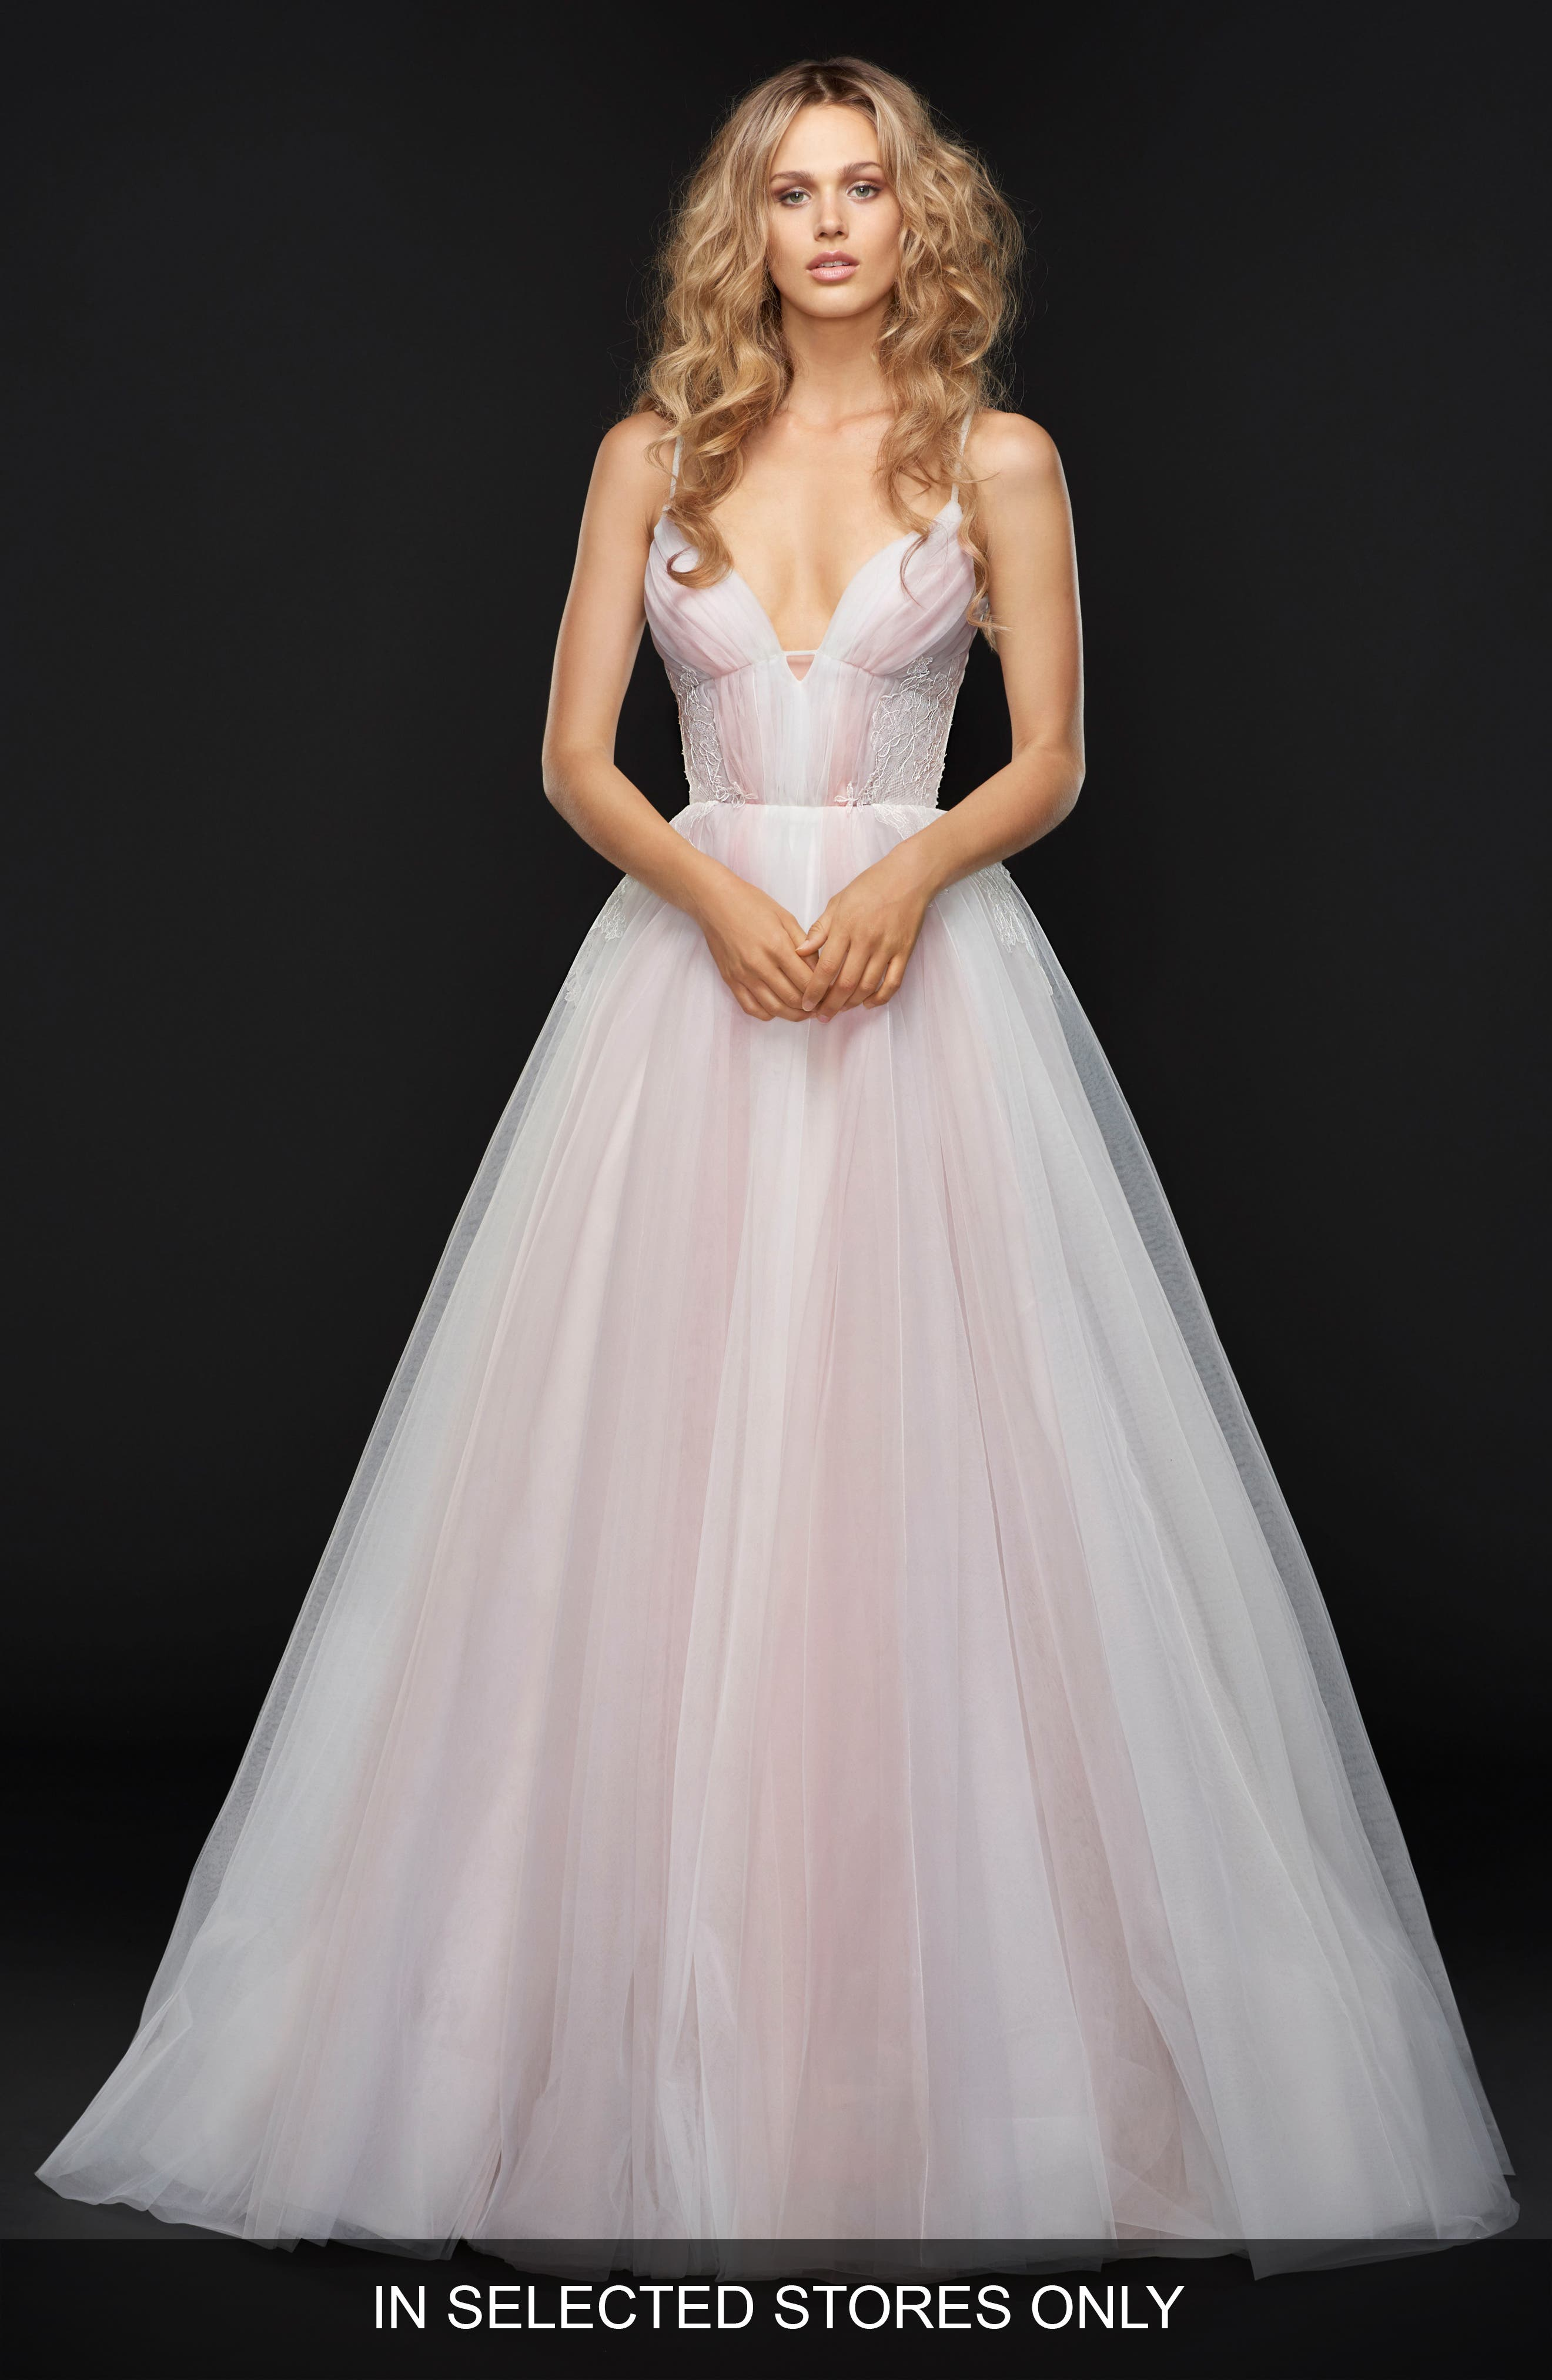 Hawthorne Sleeveless Tulle Ballgown,                             Main thumbnail 1, color,                             ALABASTER